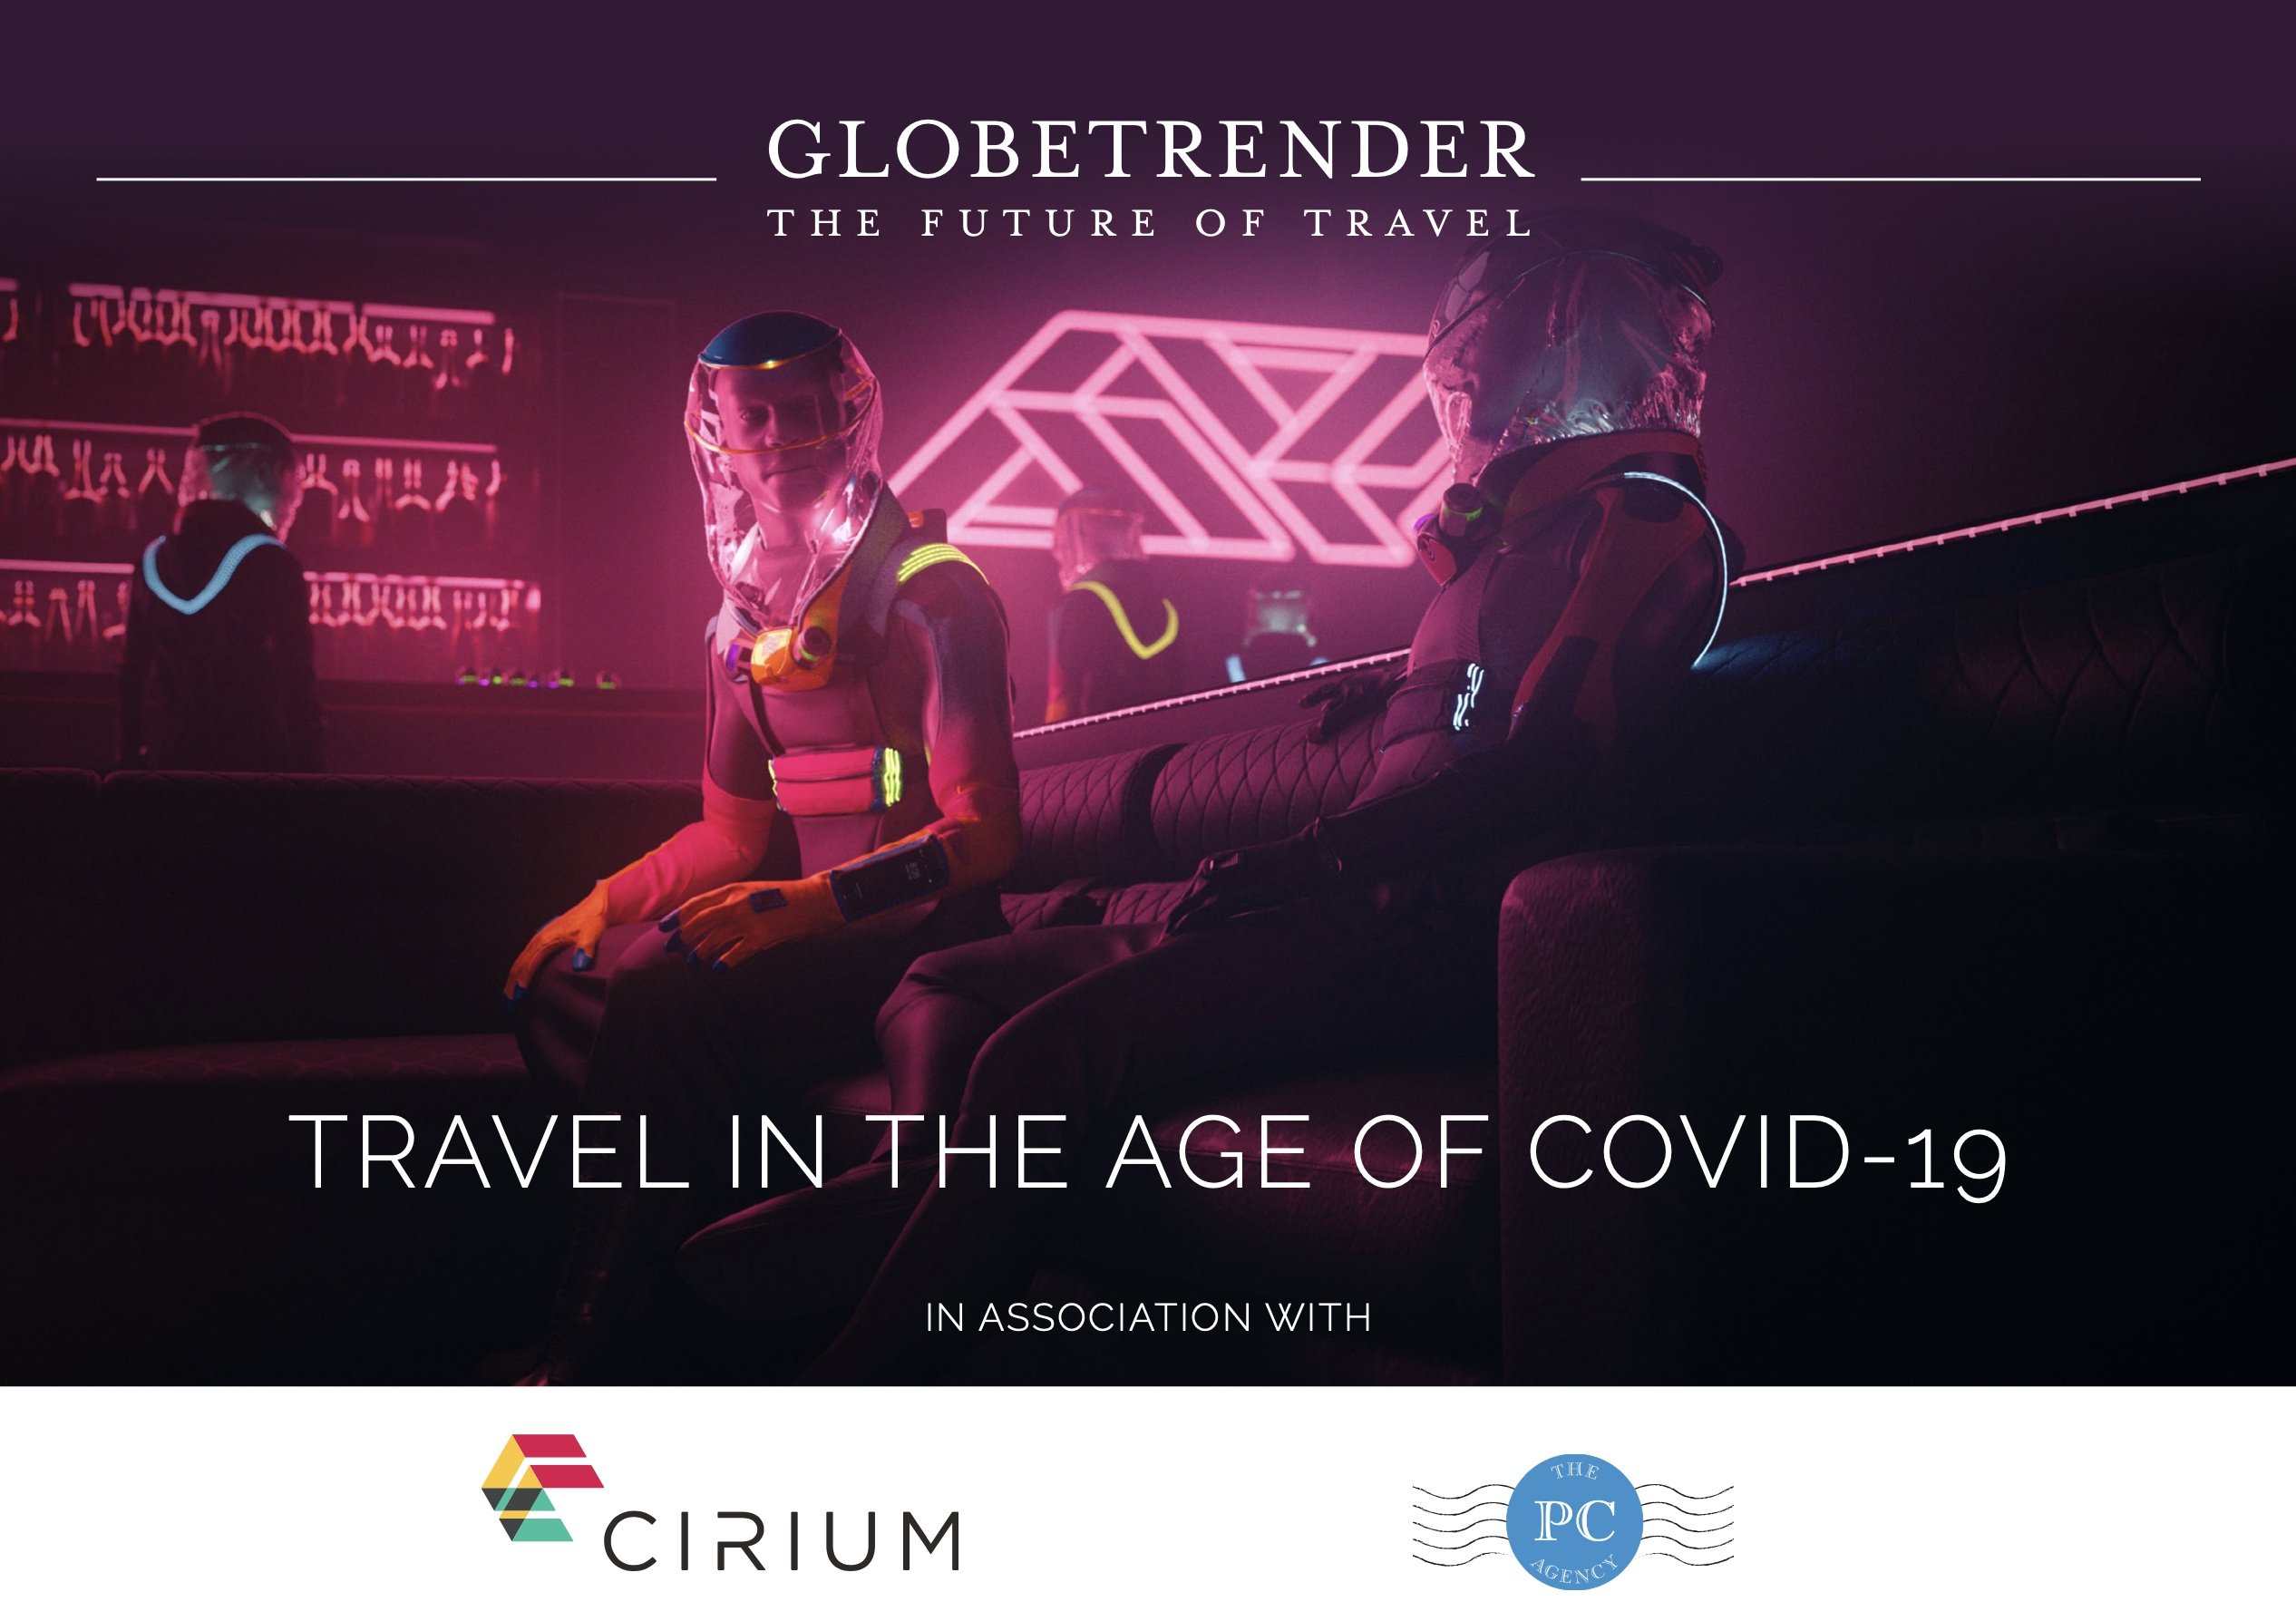 Travel in the Age of Covid 19